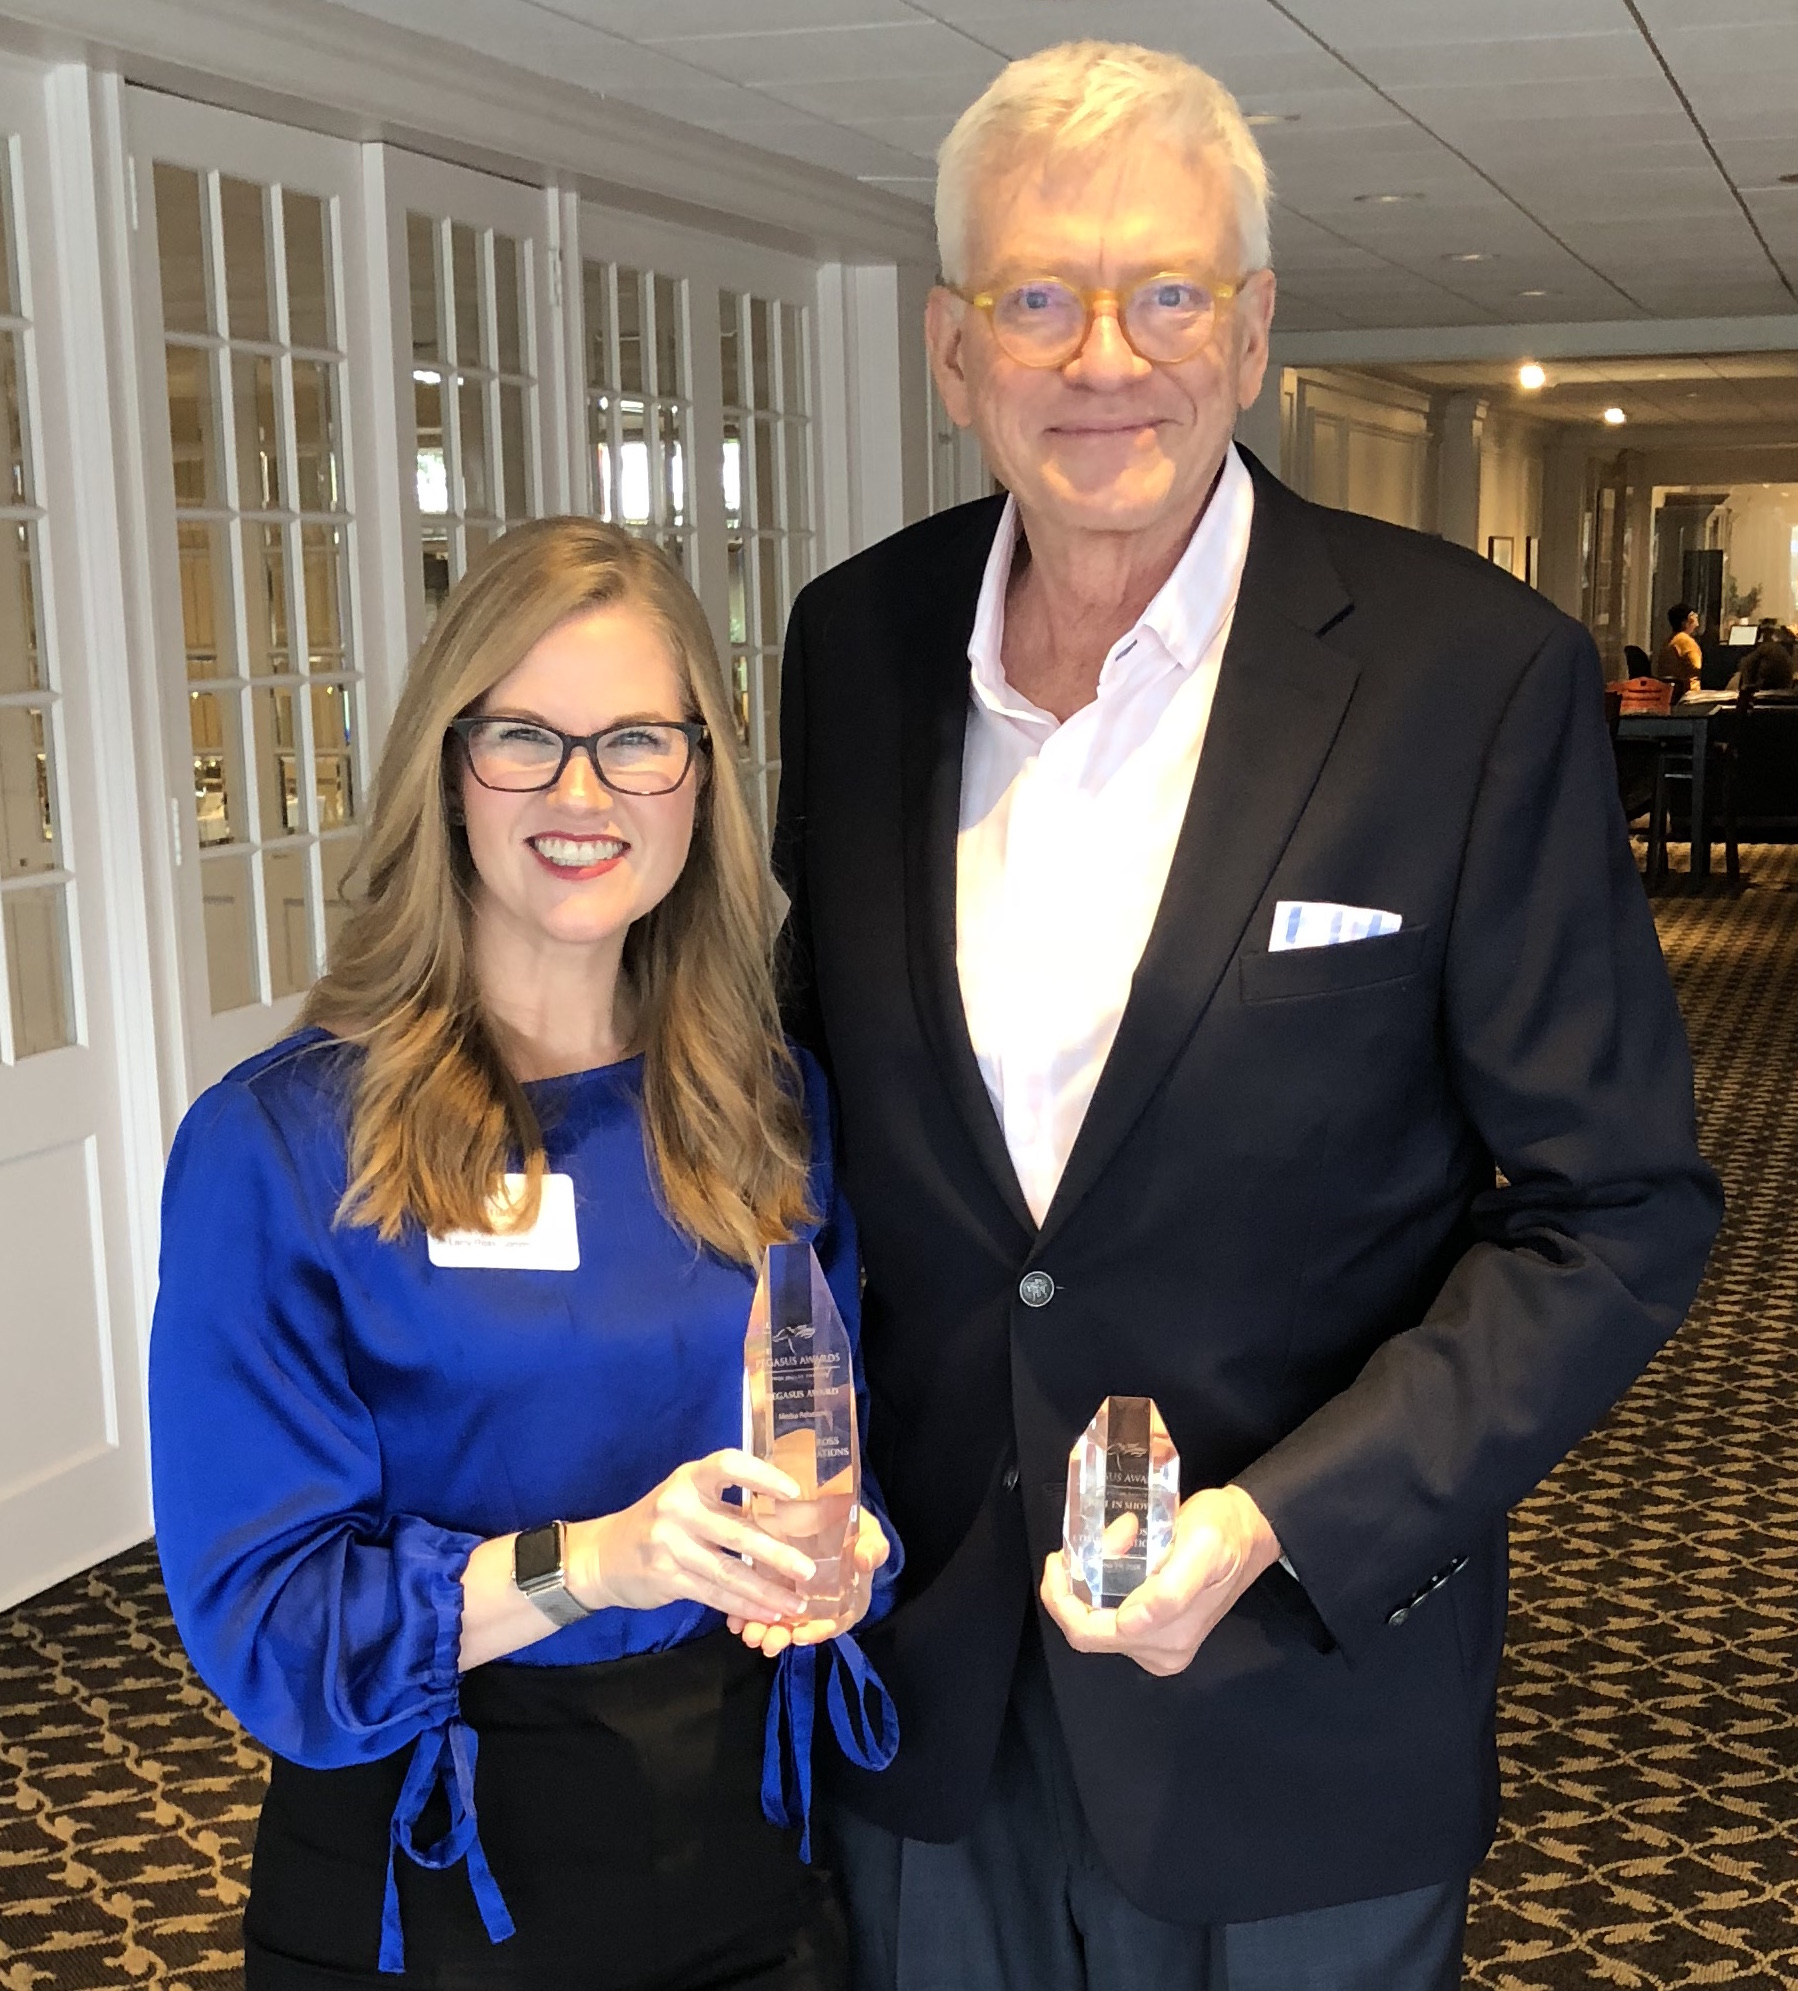 """Vice President of Account Services Kristin Cole and President A. Larry Ross accept the 2018 PRSA Dallas Pegasus Awards for """"Projects Best in Show"""" and """"Media Relations, Consumer"""" on behalf of A. Larry Ross Communications. (A. Larry Ross Communications)"""